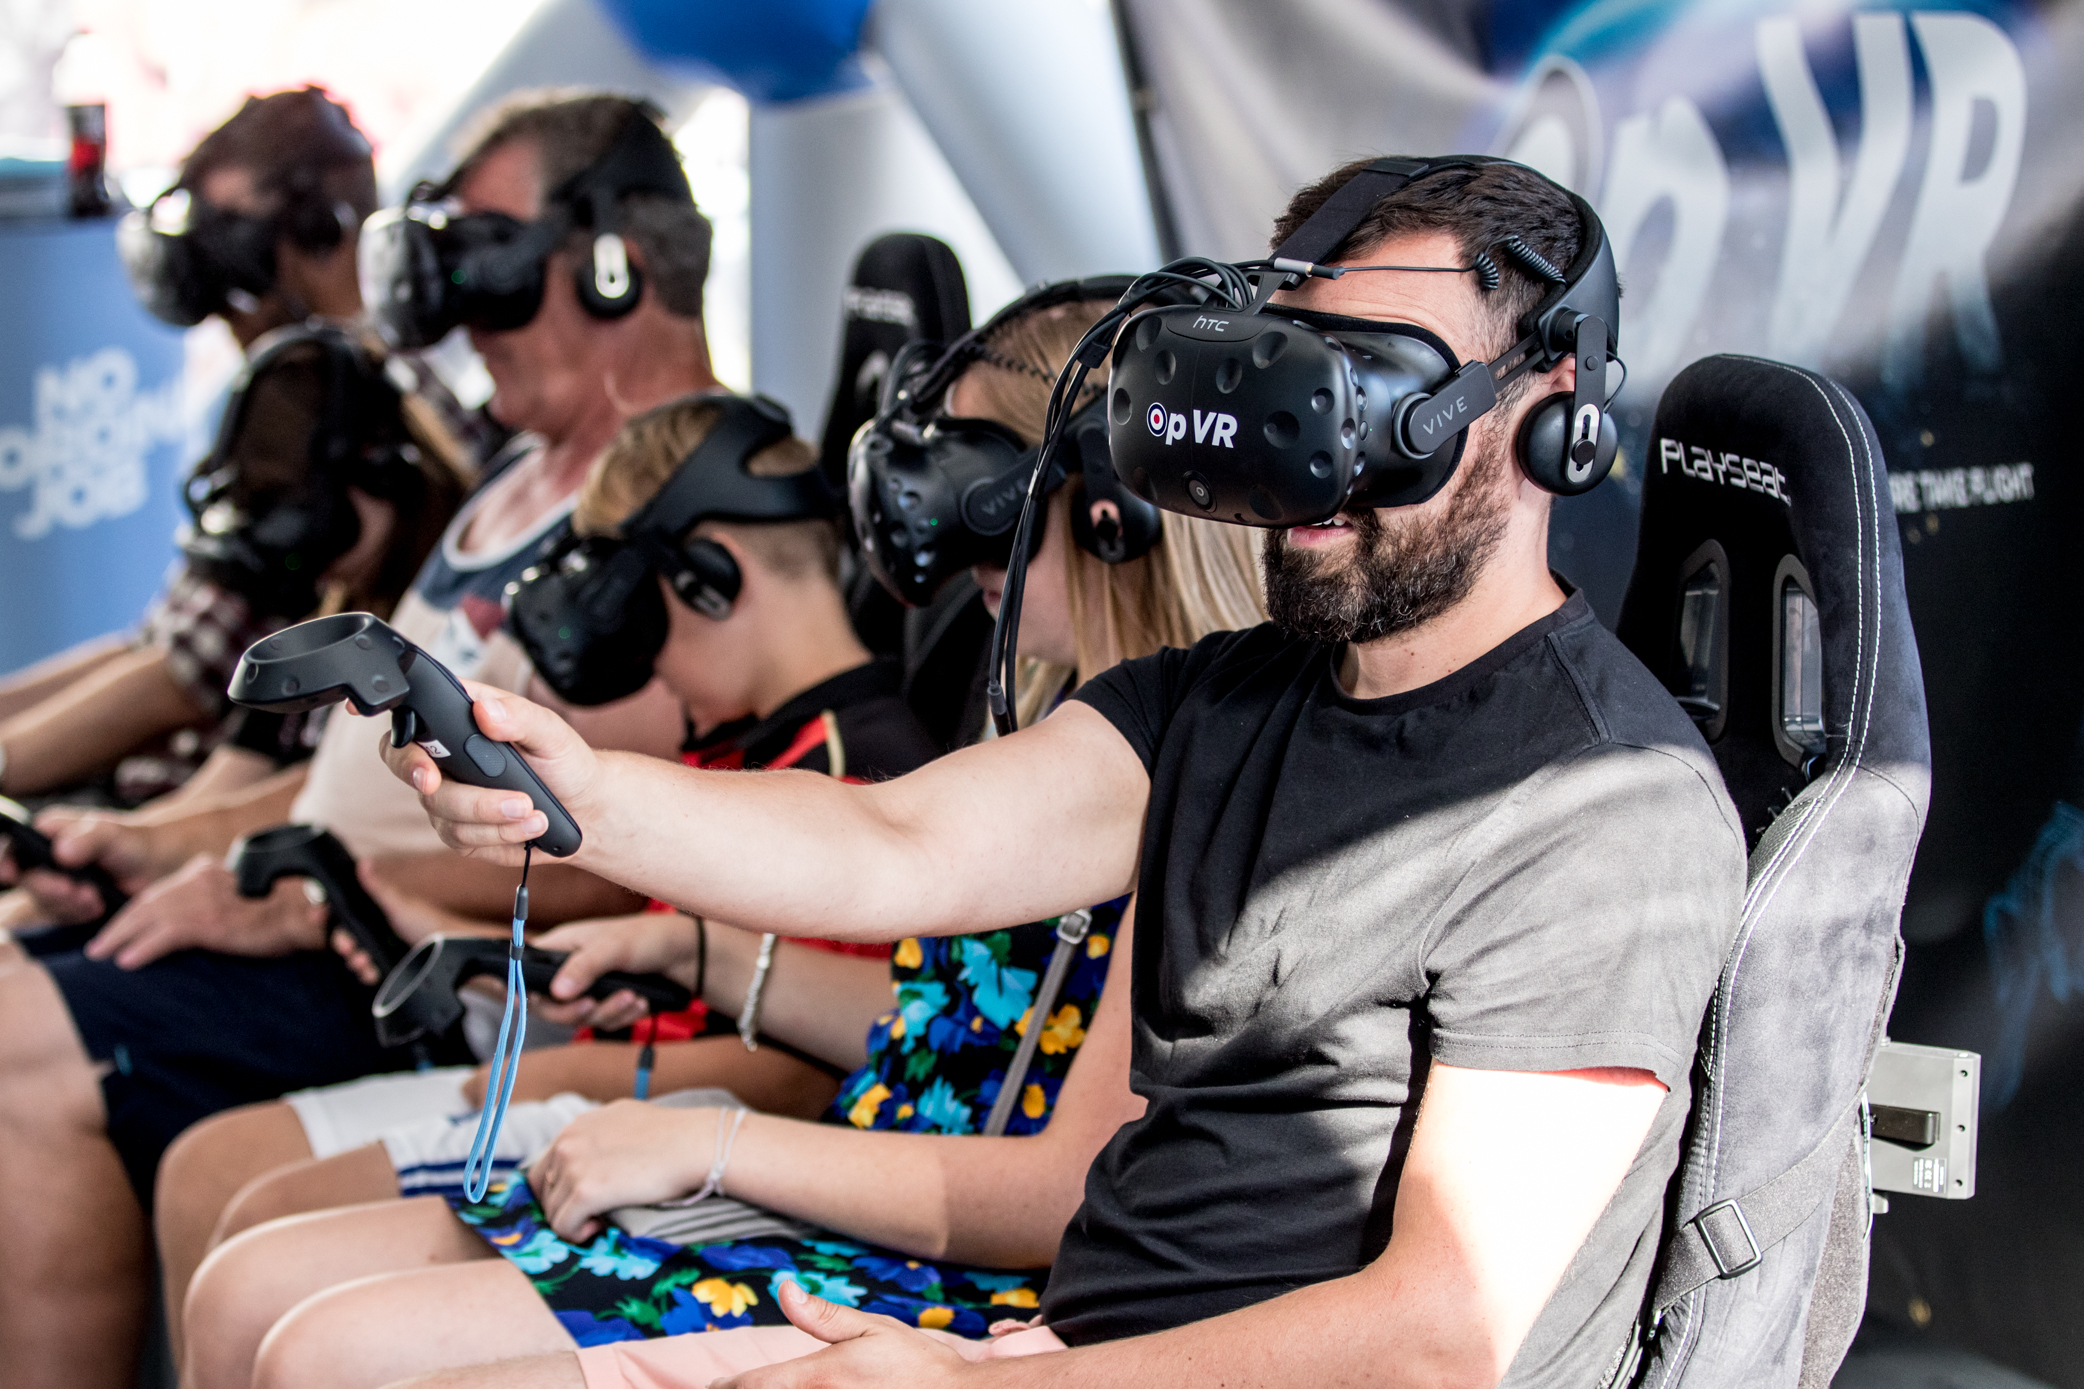 Air Festival visitors enjoying their time in the Virtual reality headset at the RAF village